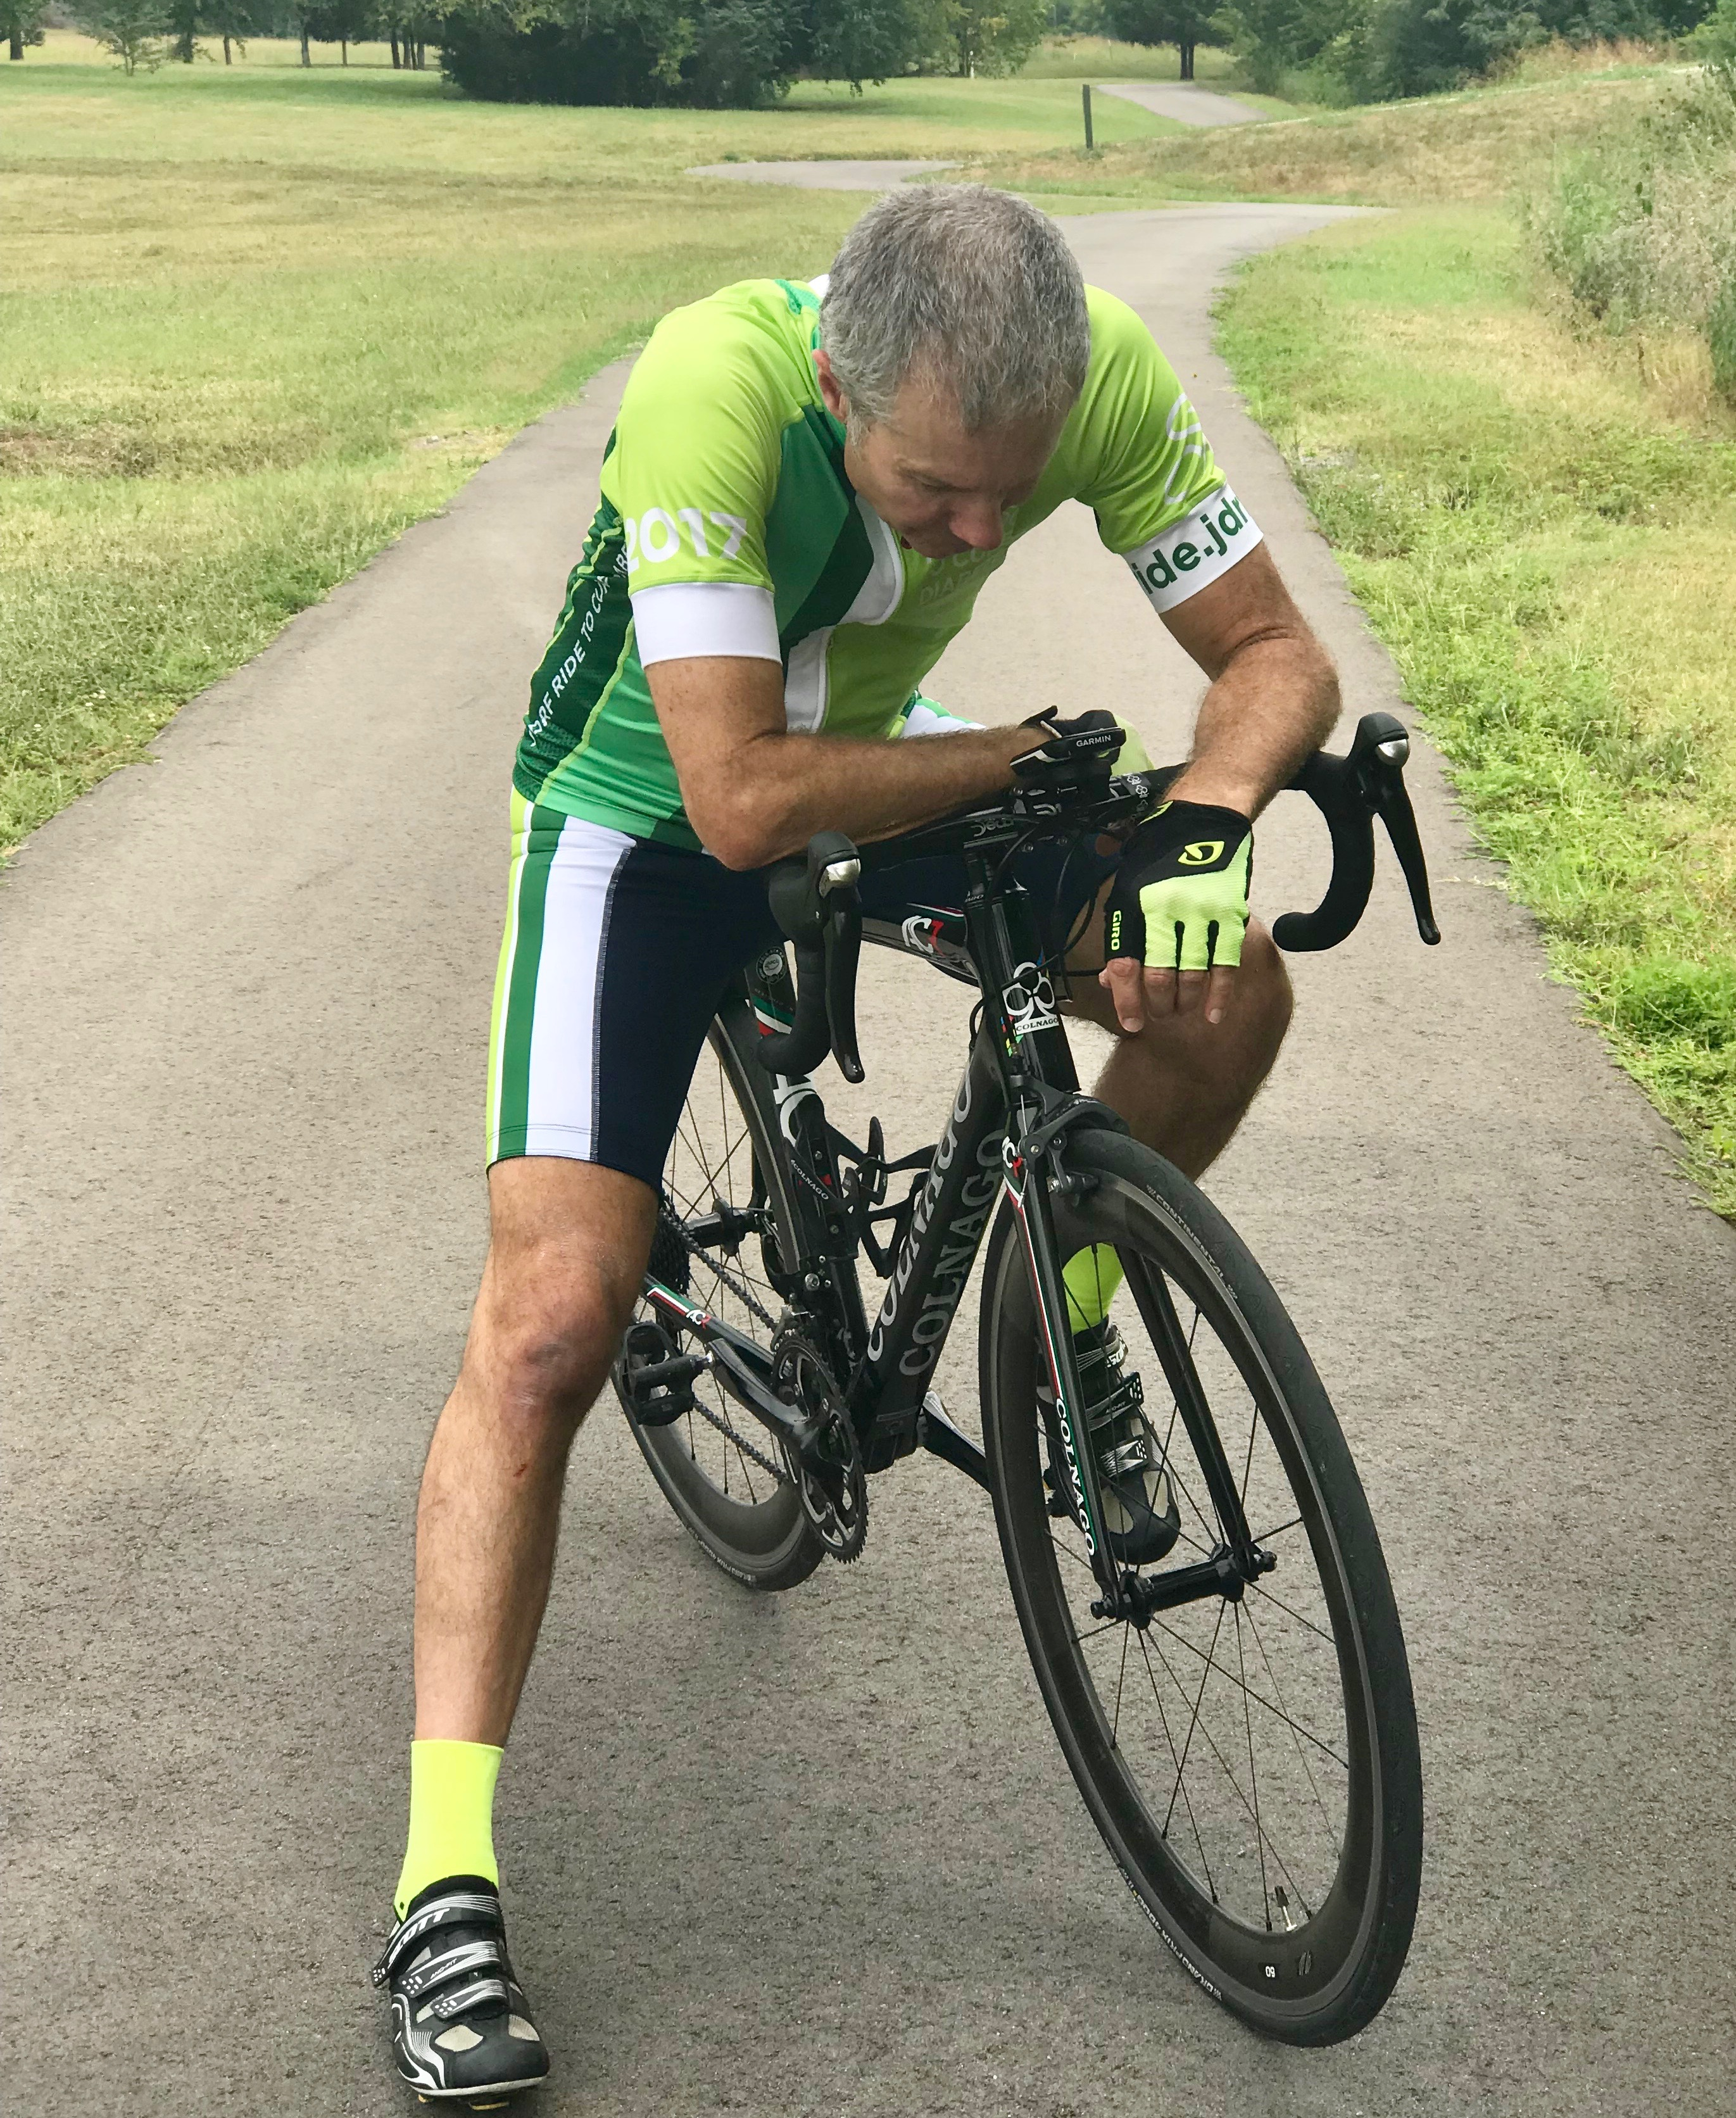 Cycling after 50